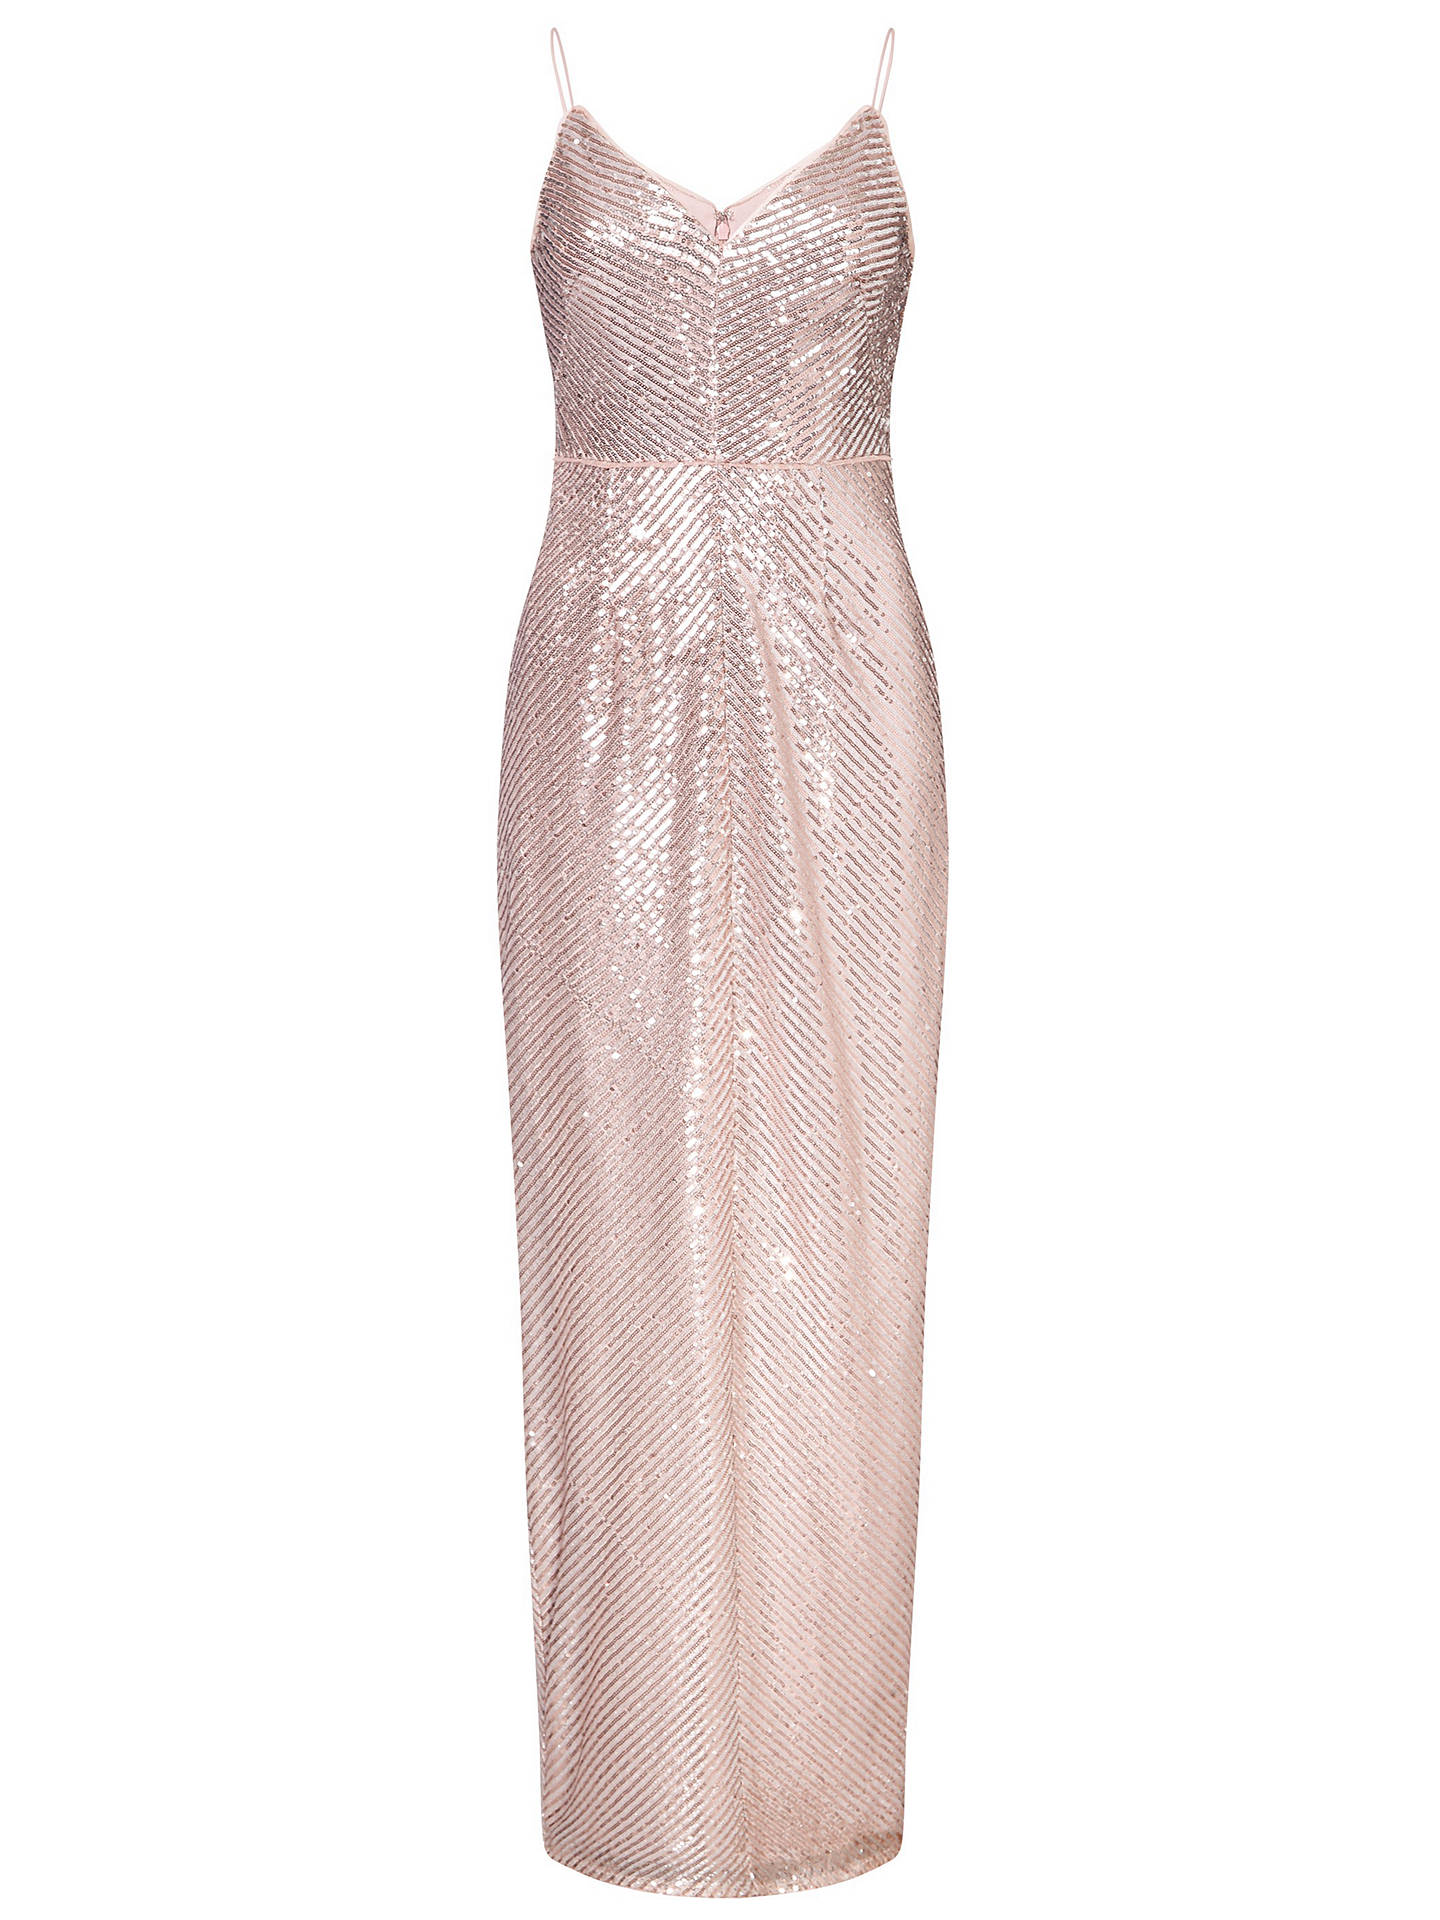 Buy Adrianna Papell Stripe Sequin Gown, Rose Gold, 18 Online at johnlewis.com